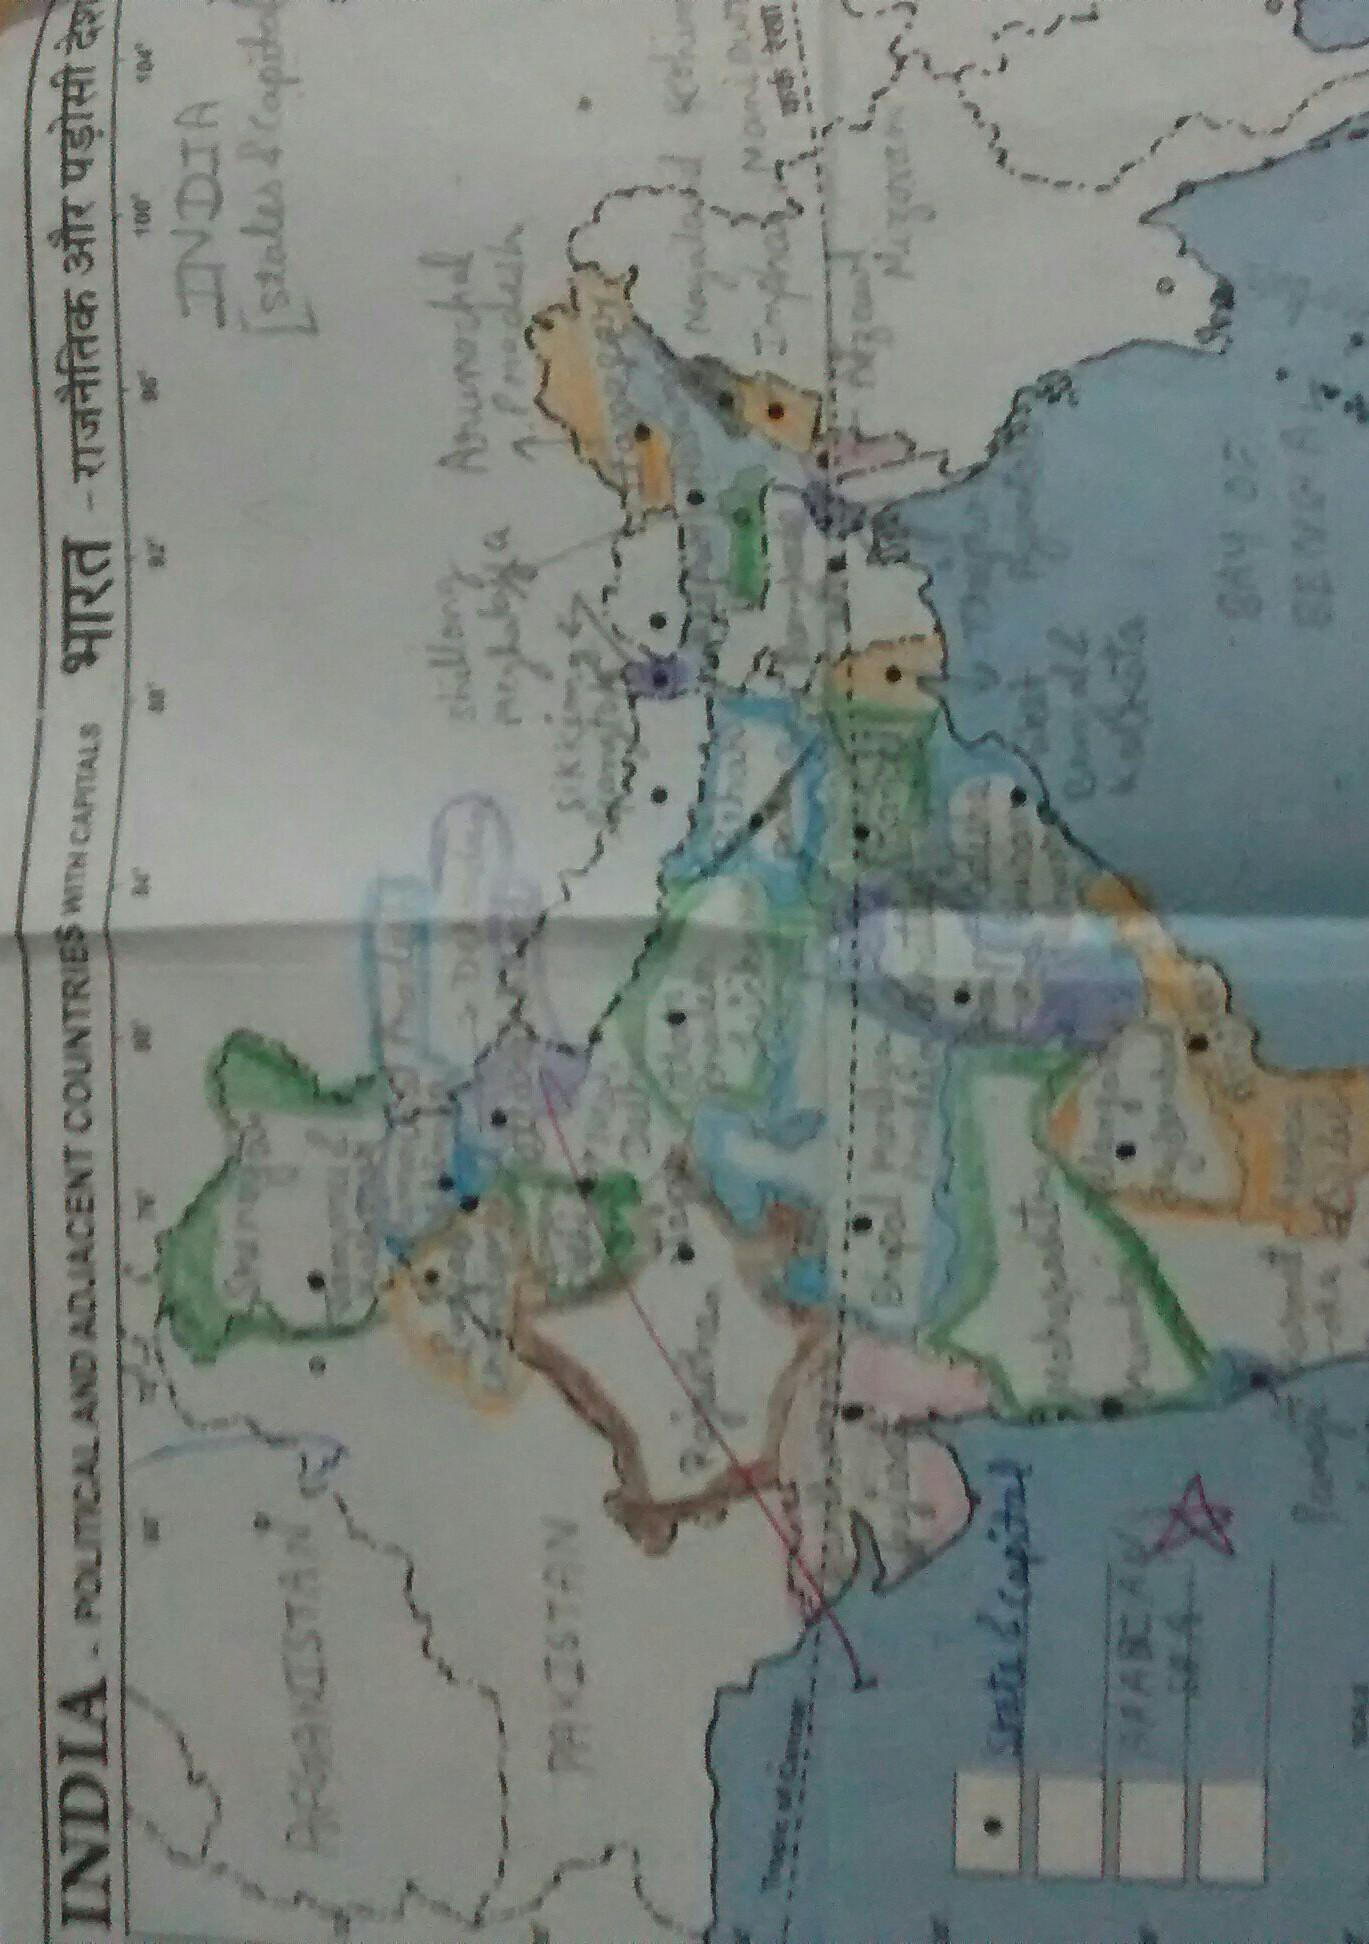 the given outline map of India.i) Most populous state of ... on i need an eraser, i need sunscreen, i need an umbrella, i need text, i need an essay, i need lunch, i need address, i need phone numbers, i need camera, i need water, i need an id, i need transportation, us postal code map, i need contacts, bank of america map, i need fire, i need history, i need hours, i need some money, i need directions,